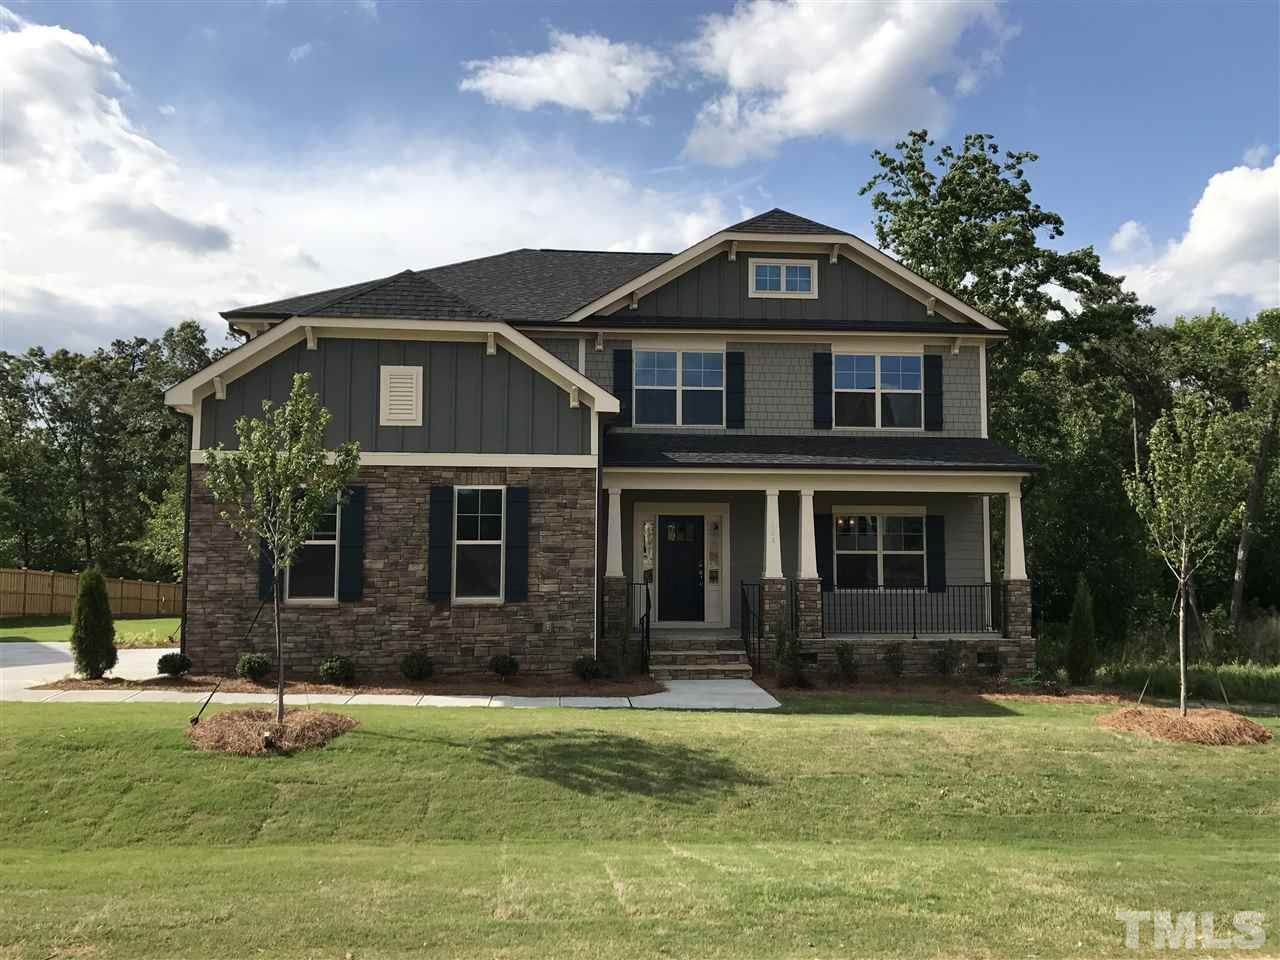 stunning new home in clayton